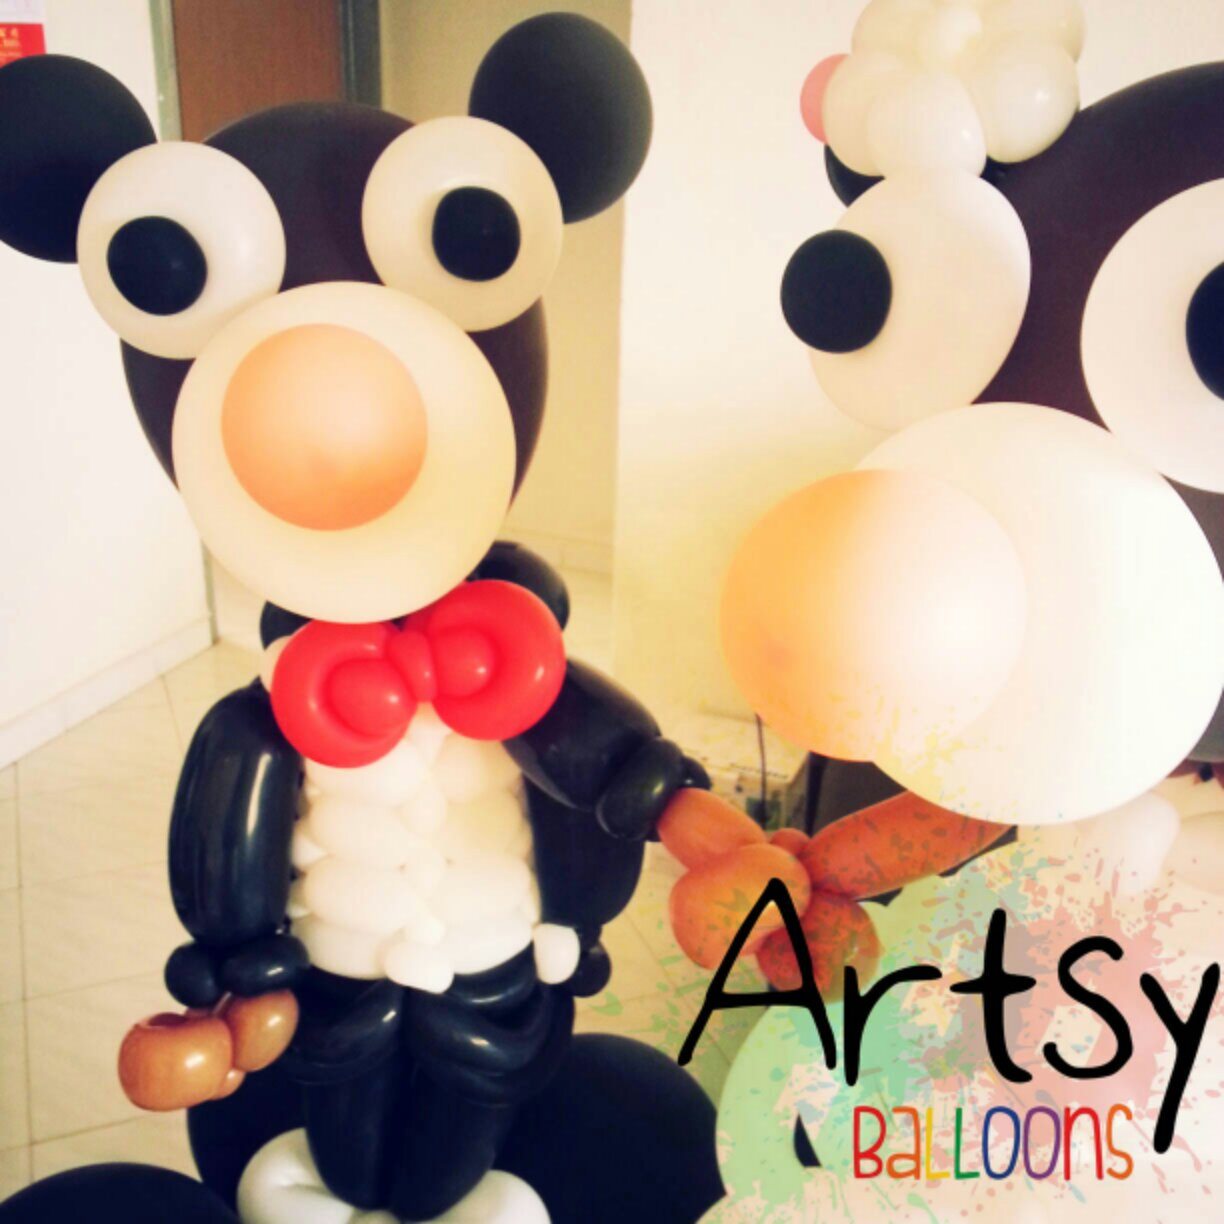 , A pair of large balloon bear sculpture!, Singapore Balloon Decoration Services - Balloon Workshop and Balloon Sculpting